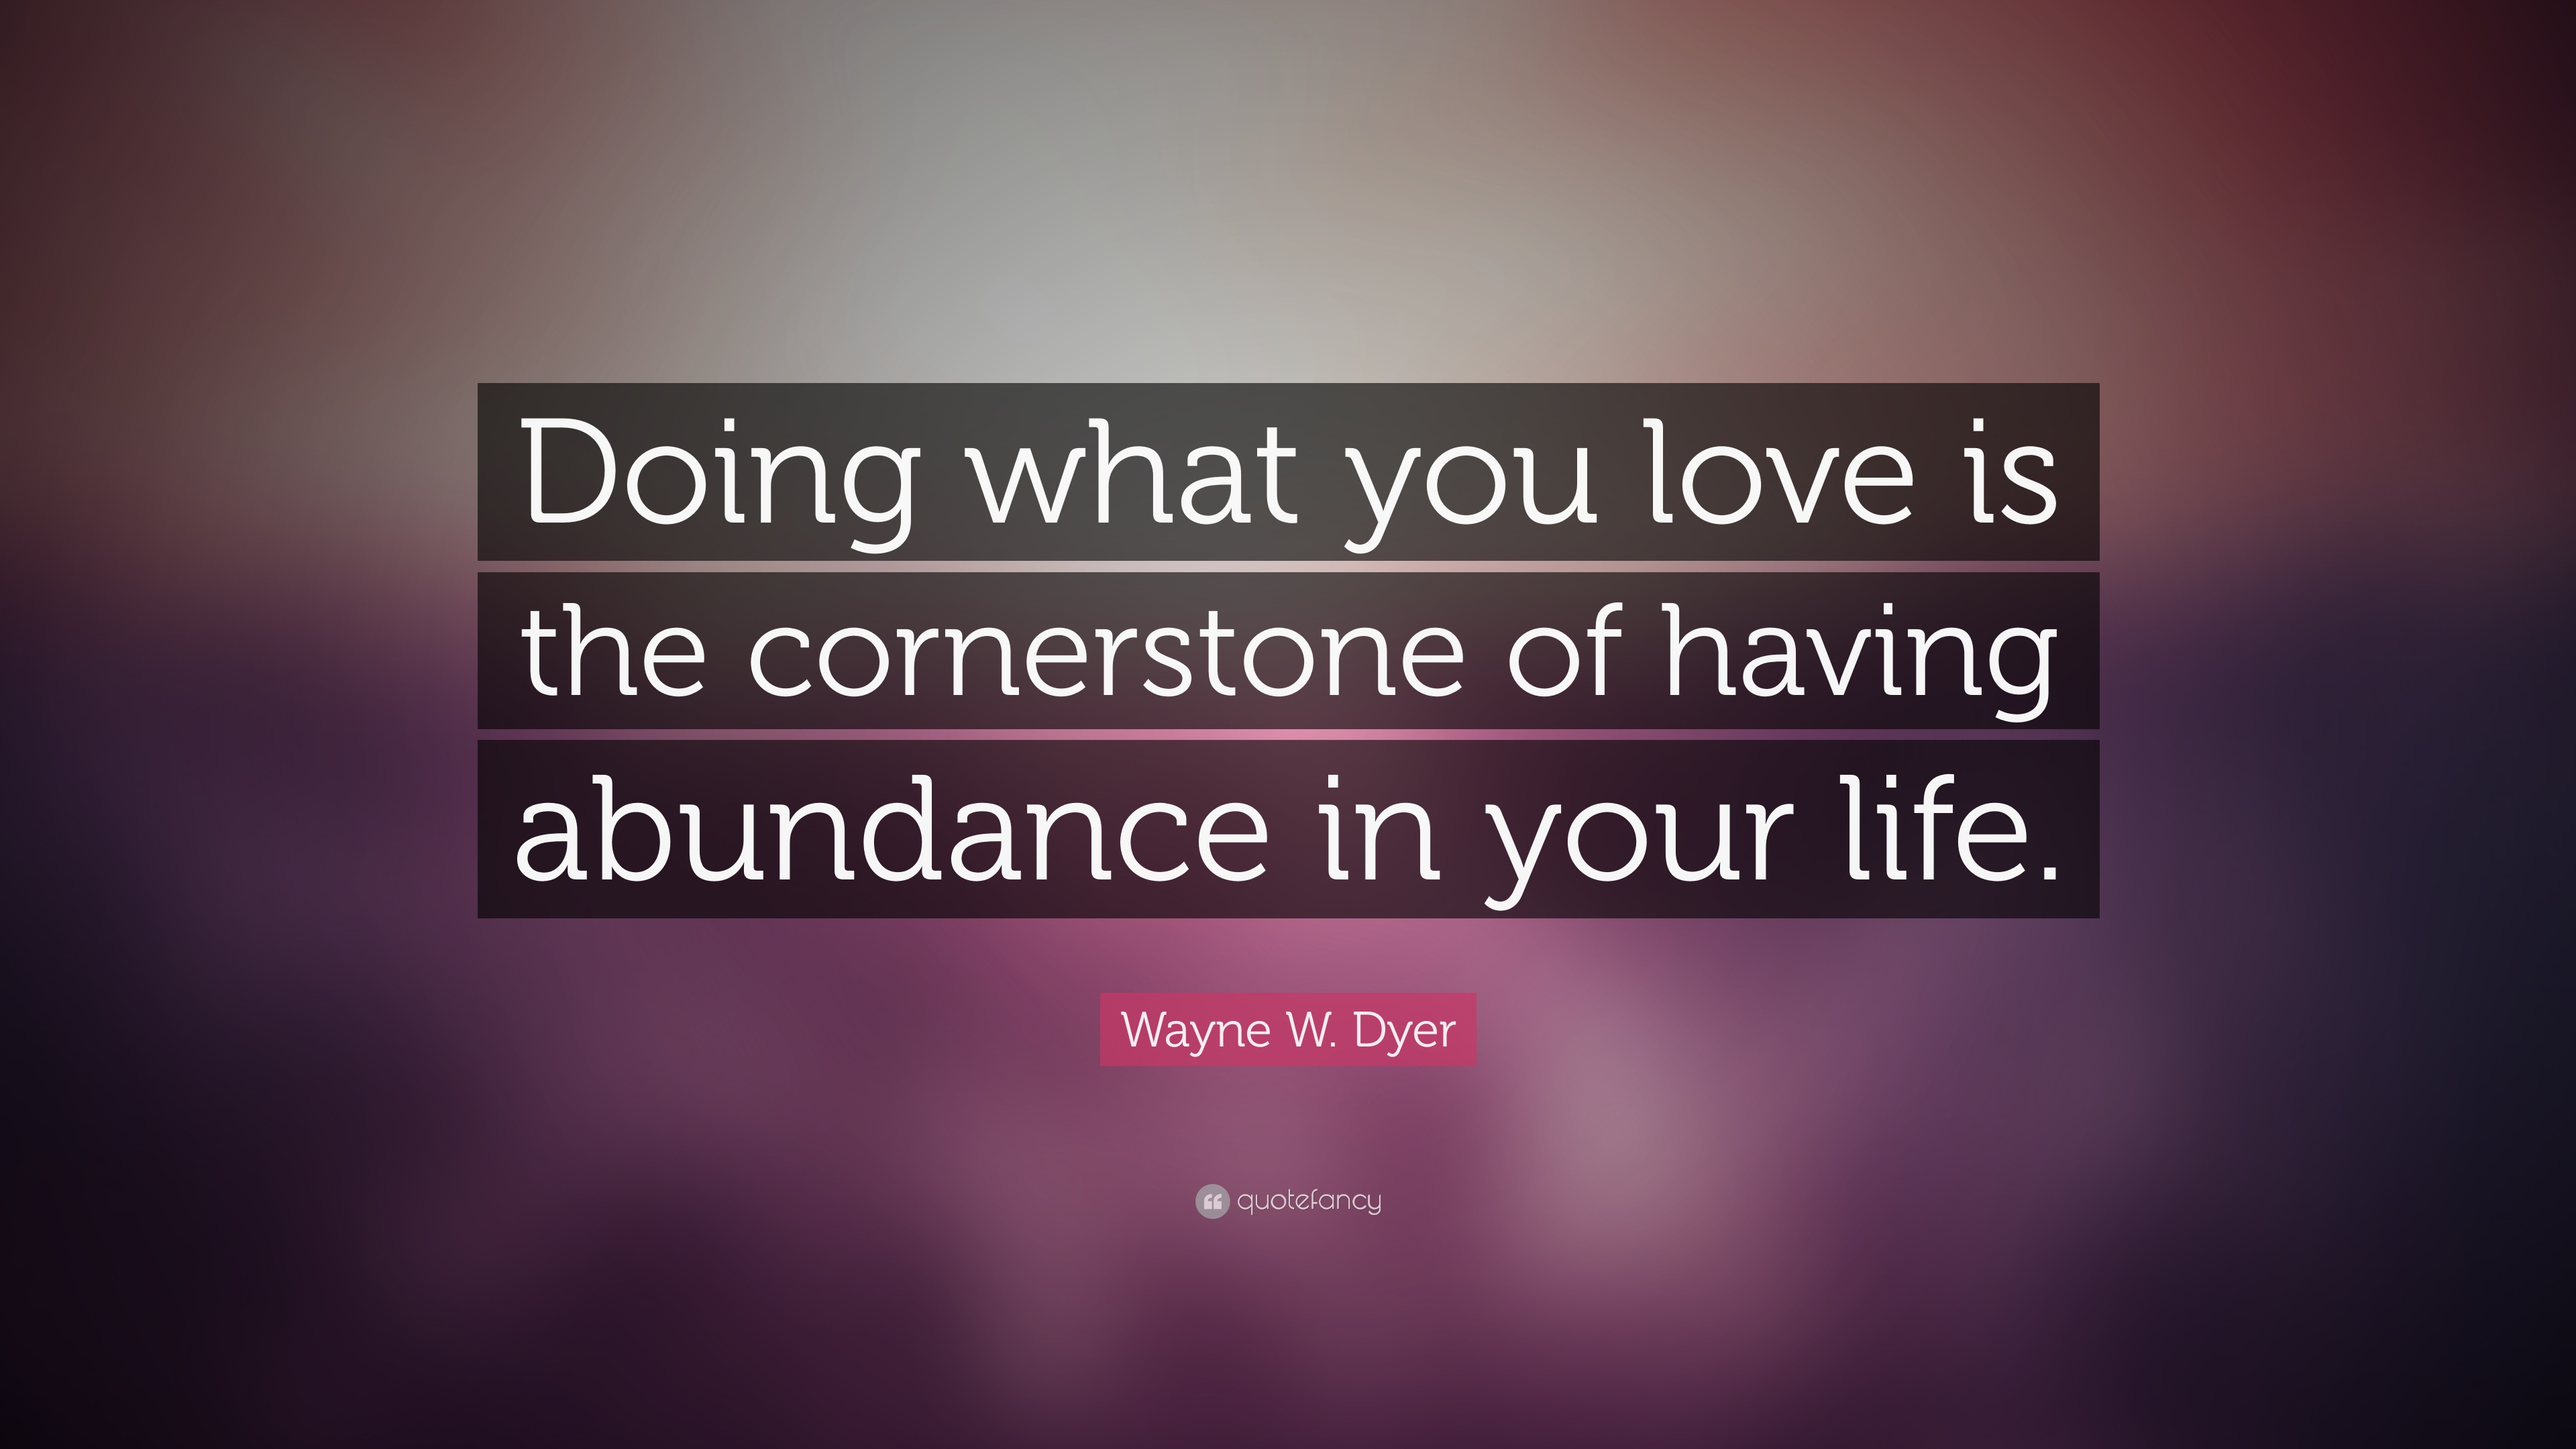 wayne w  dyer quote   u201cdoing what you love is the cornerstone of having abundance in your life